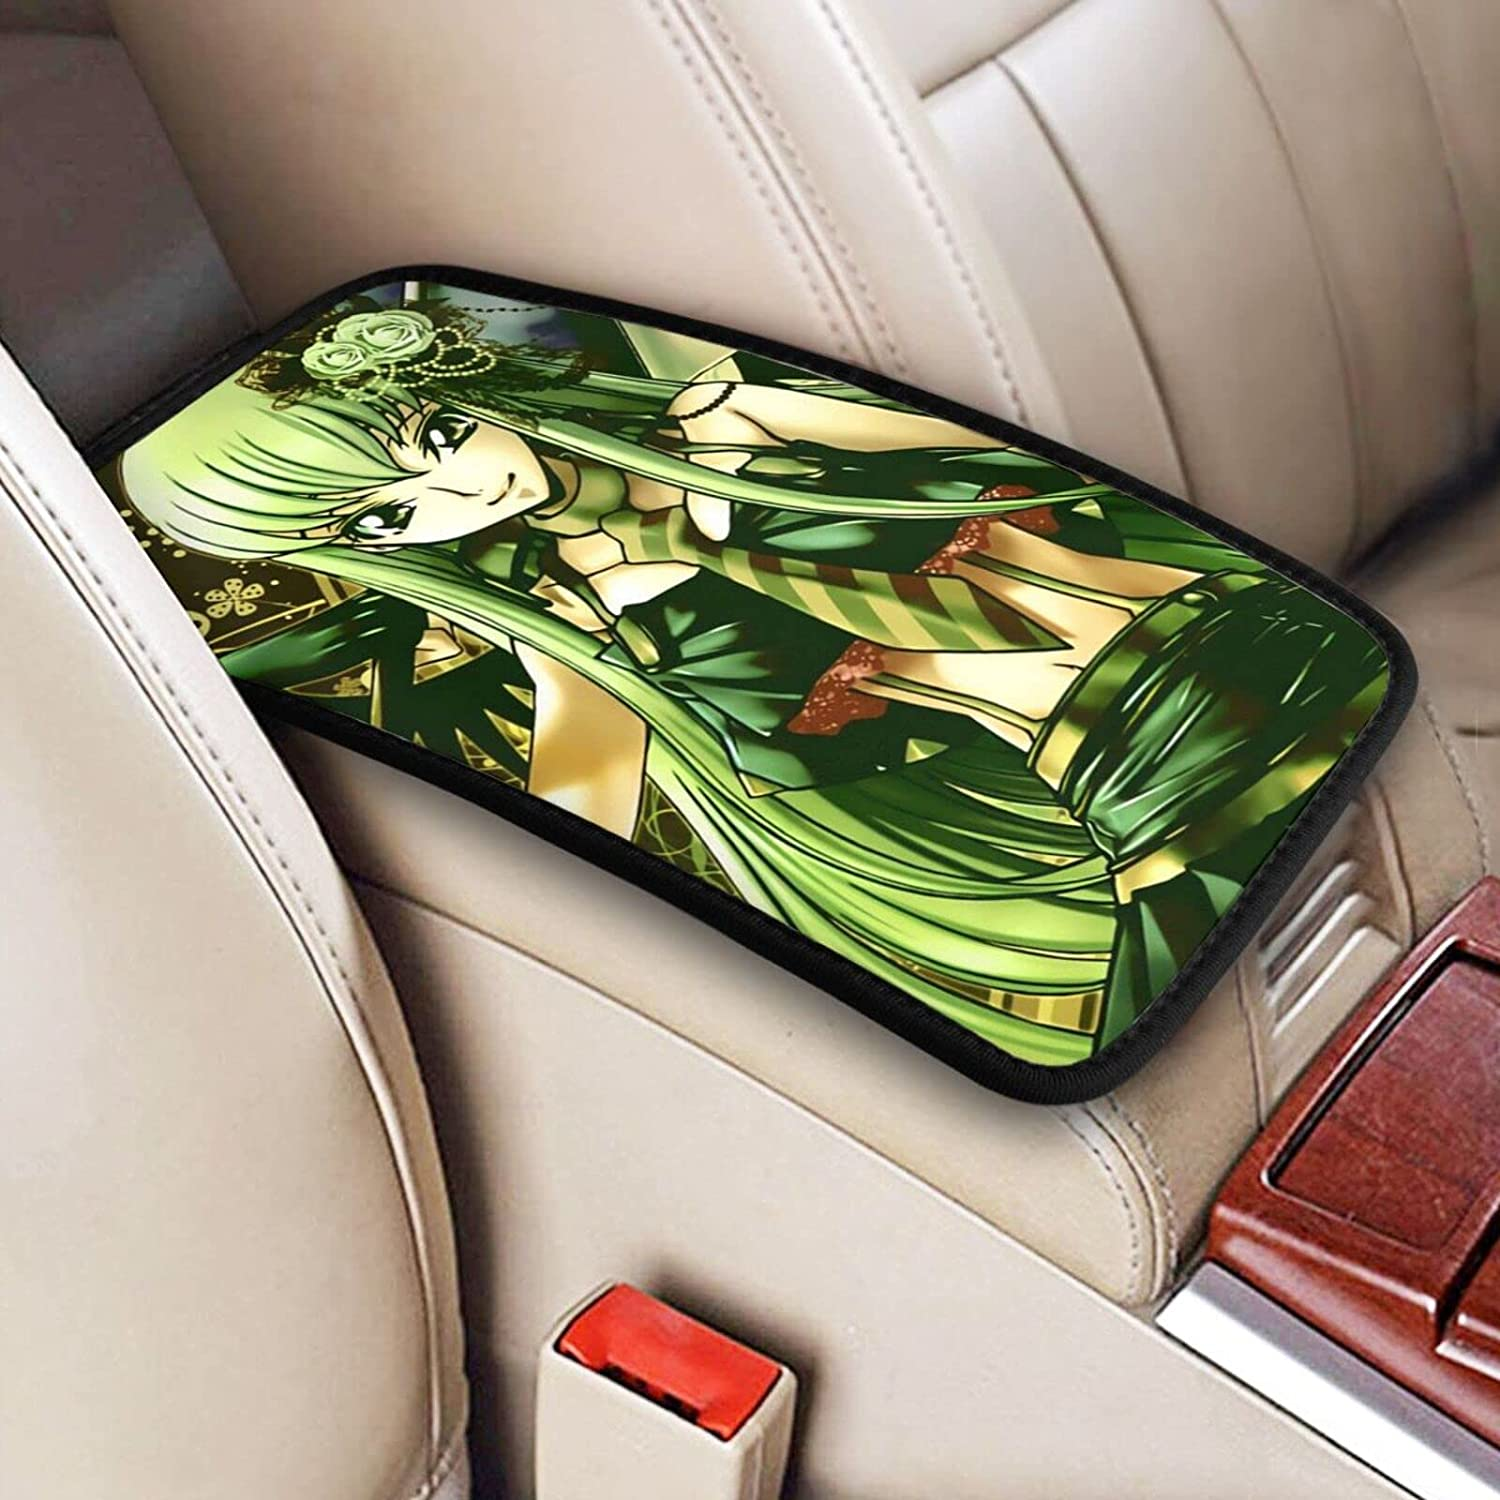 Code Geass cheap Anime Genuine Free Shipping Auto Center Console Armrest Pad C.C Soft Cover